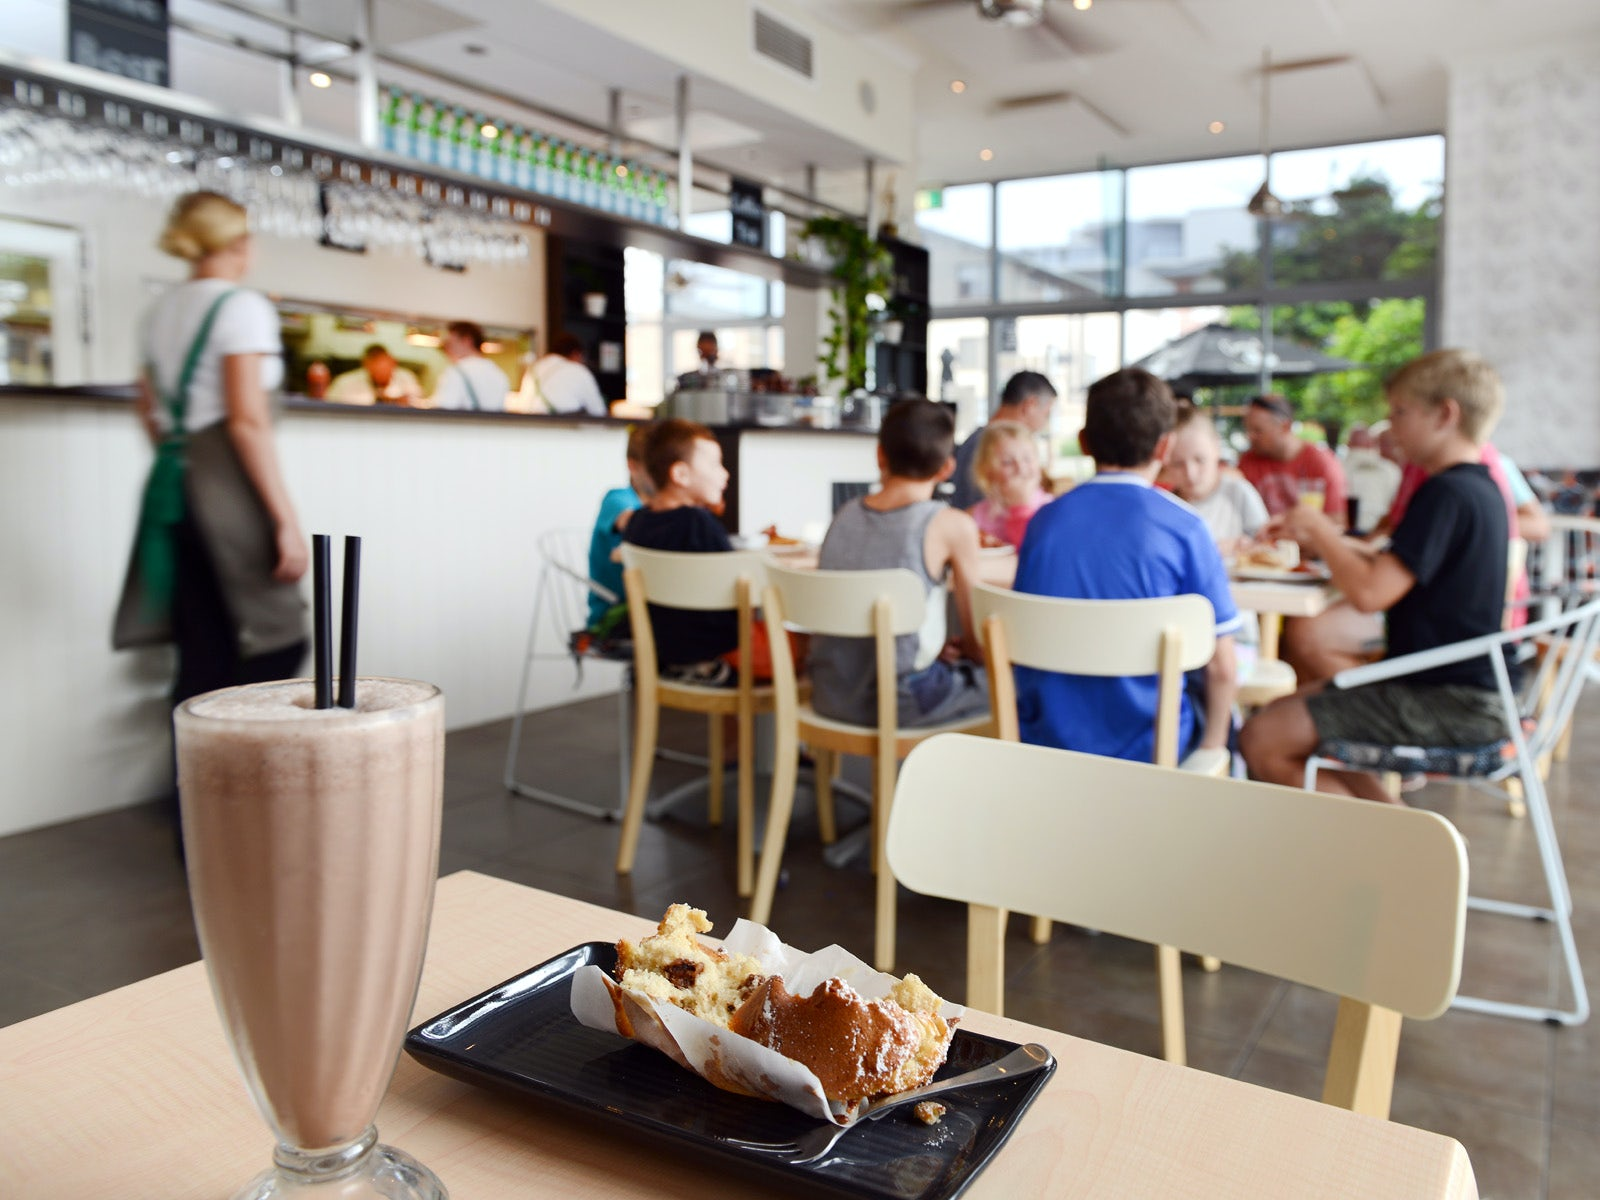 kids meal milkshake and muffin at macquarie waters restaurant